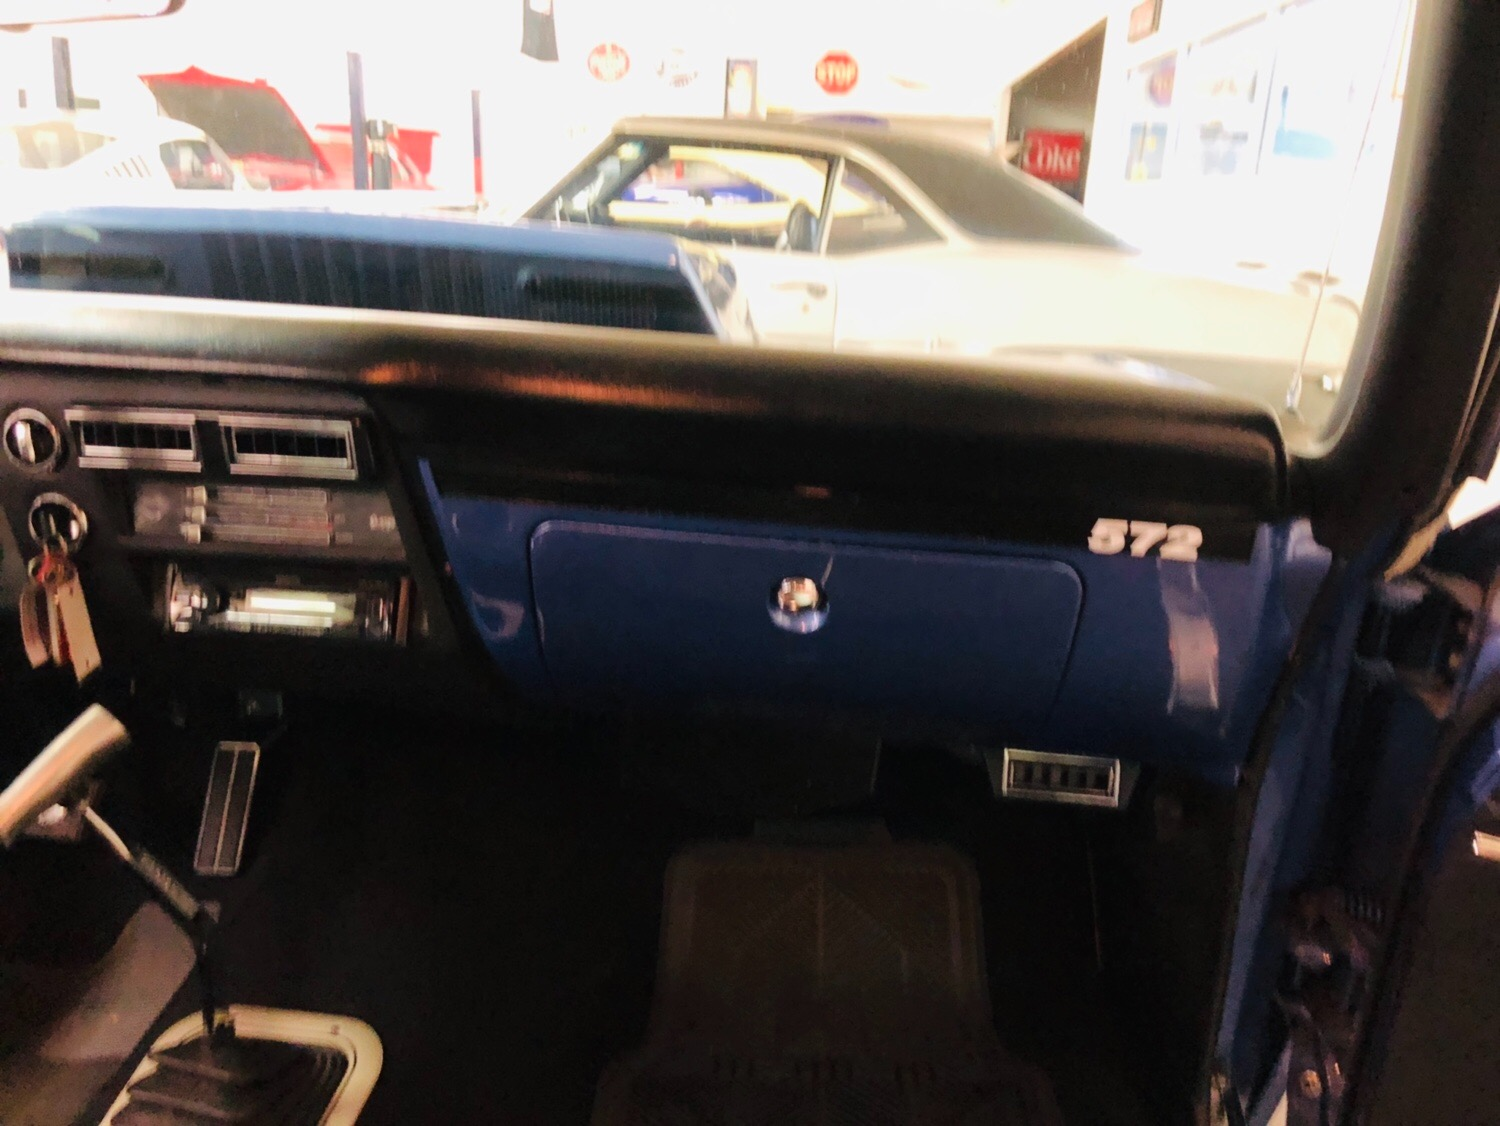 Used 1968 Chevrolet Chevelle -572 FUEL INJECTED STREET BEAST-PRO TOURING - SEE VIDEO - | Mundelein, IL